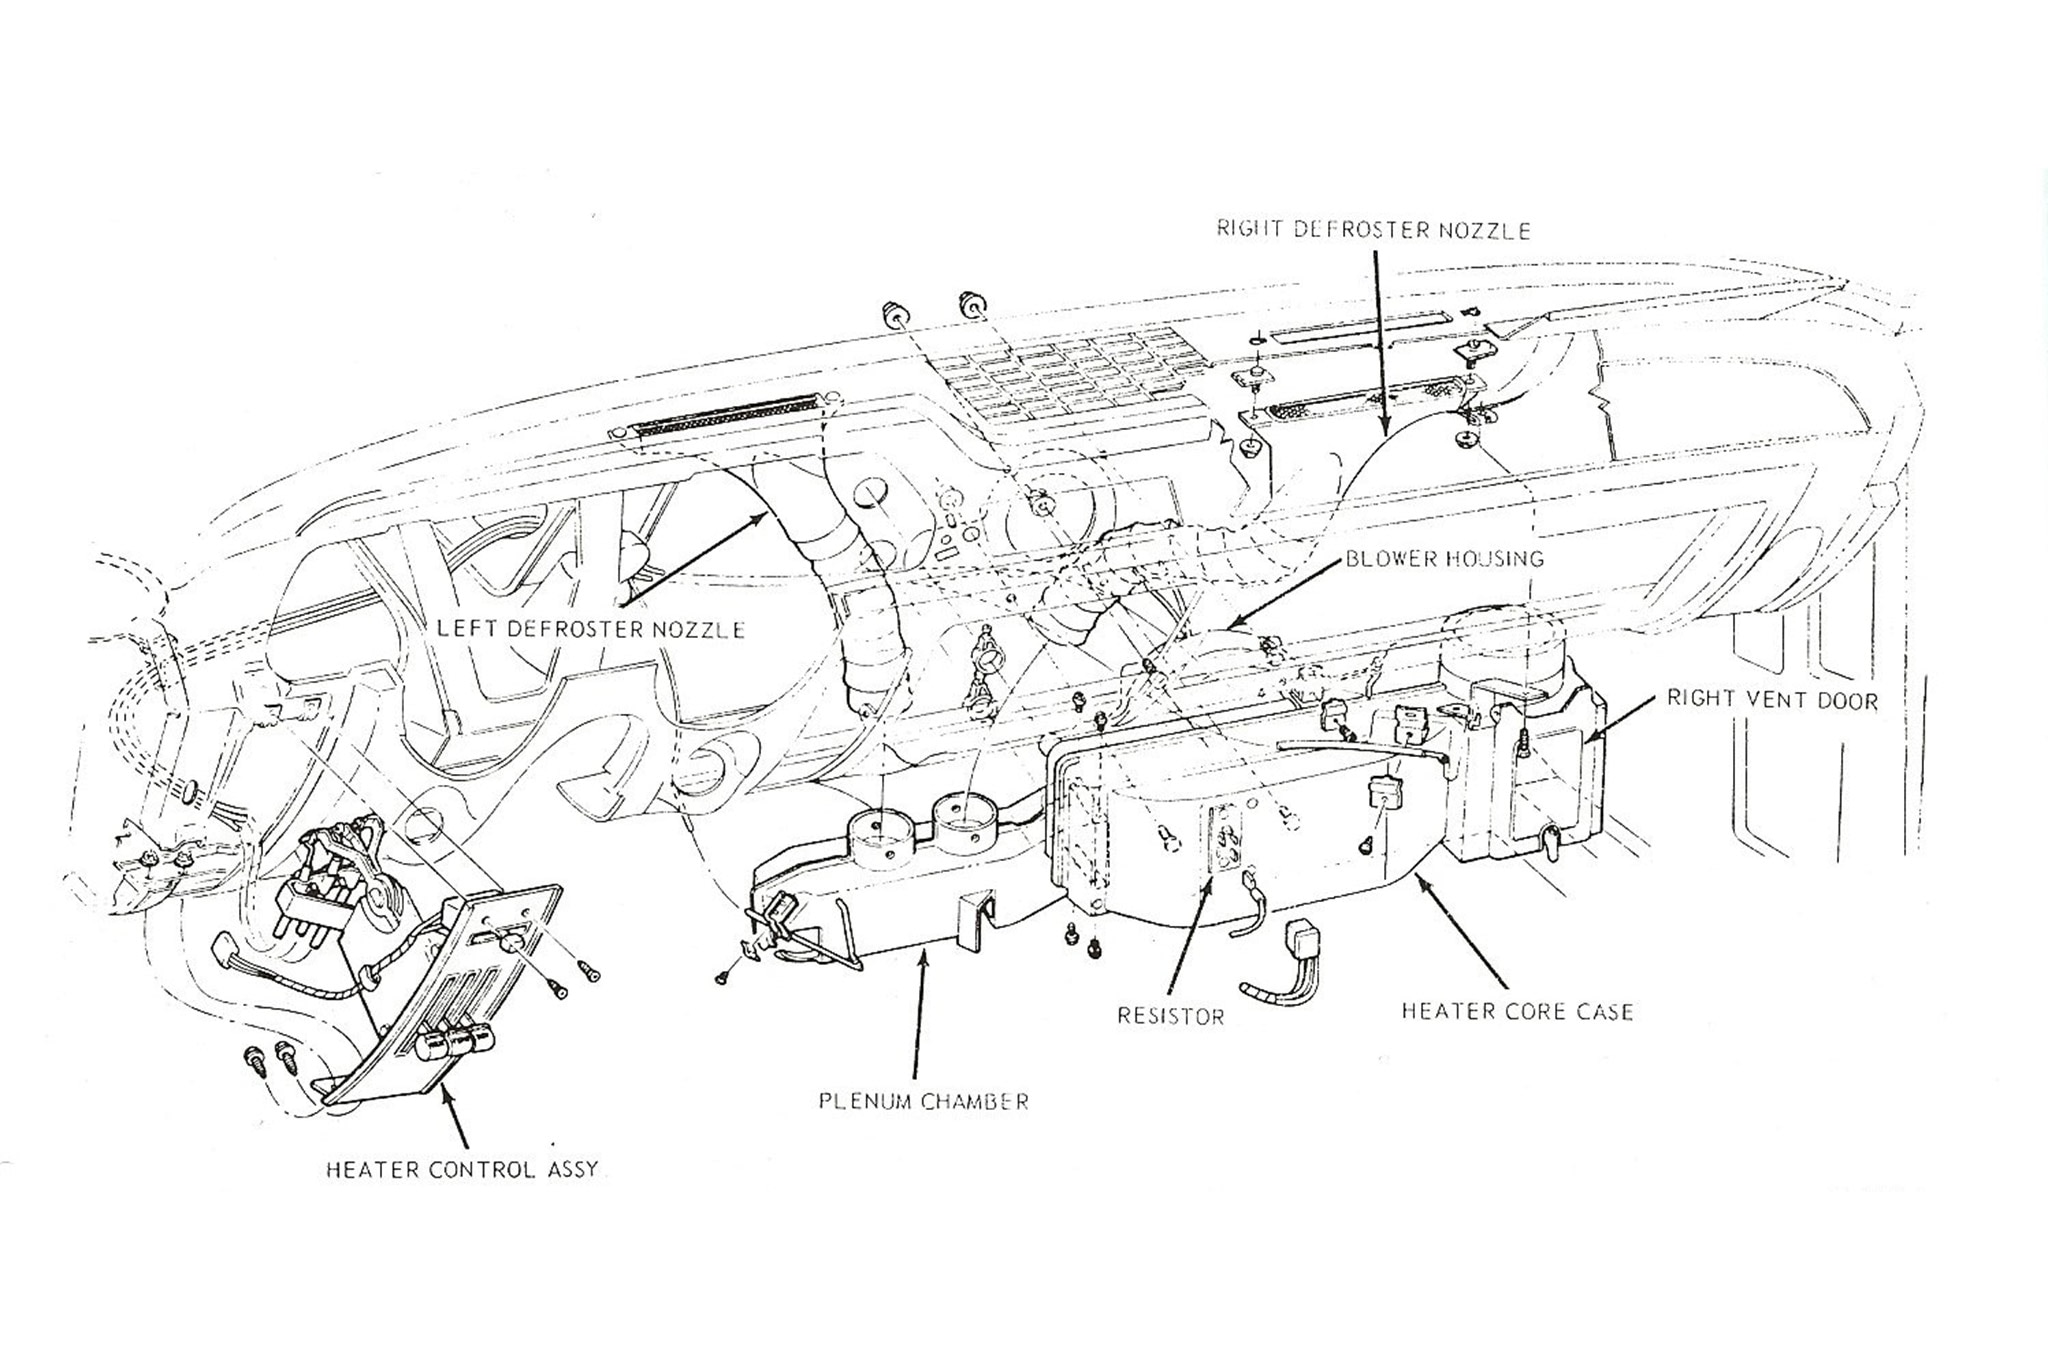 Classic Ford Mustang Heating Defrosting Diagram 01